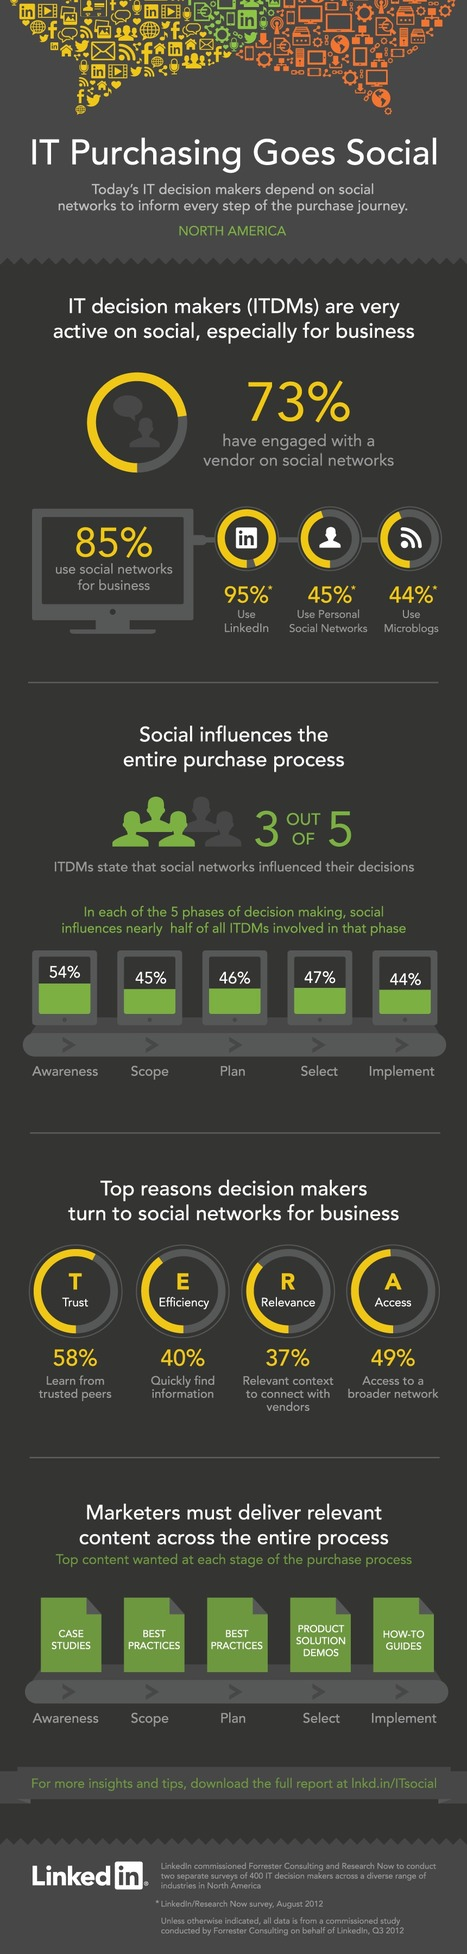 Infographic: How Social Media Impacts Purchasing Decisions... | DV8 Digital Marketing Tips and Insight | Scoop.it